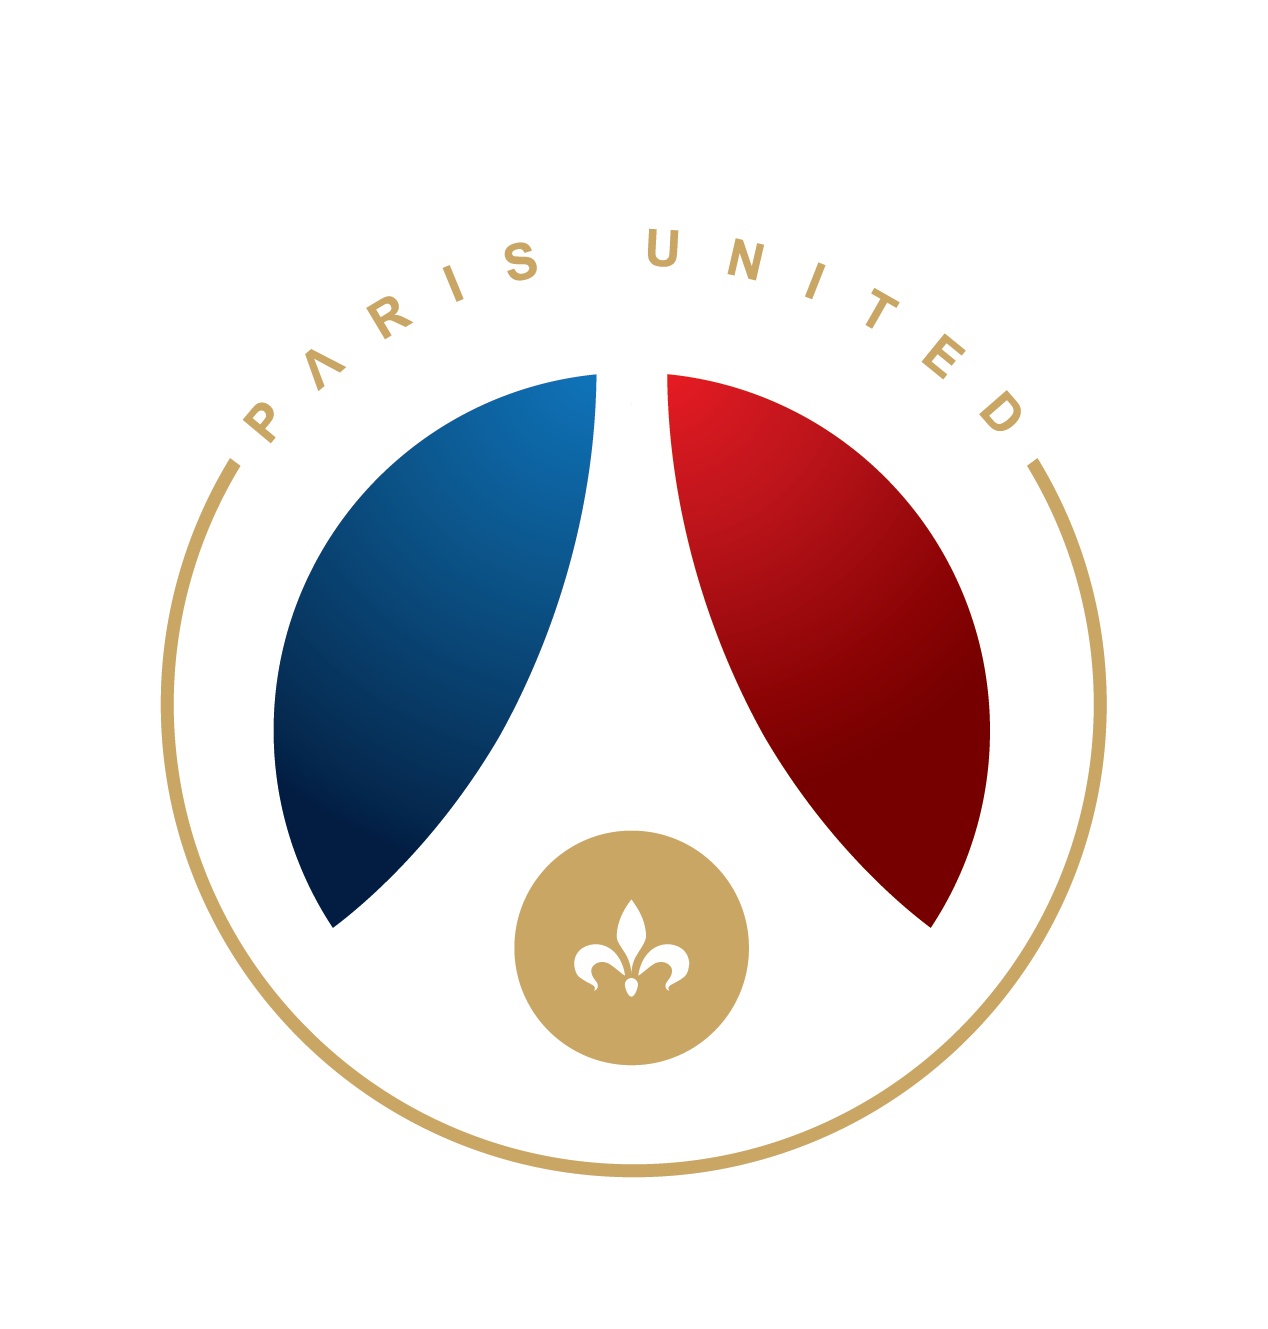 https://parisunited.fr/